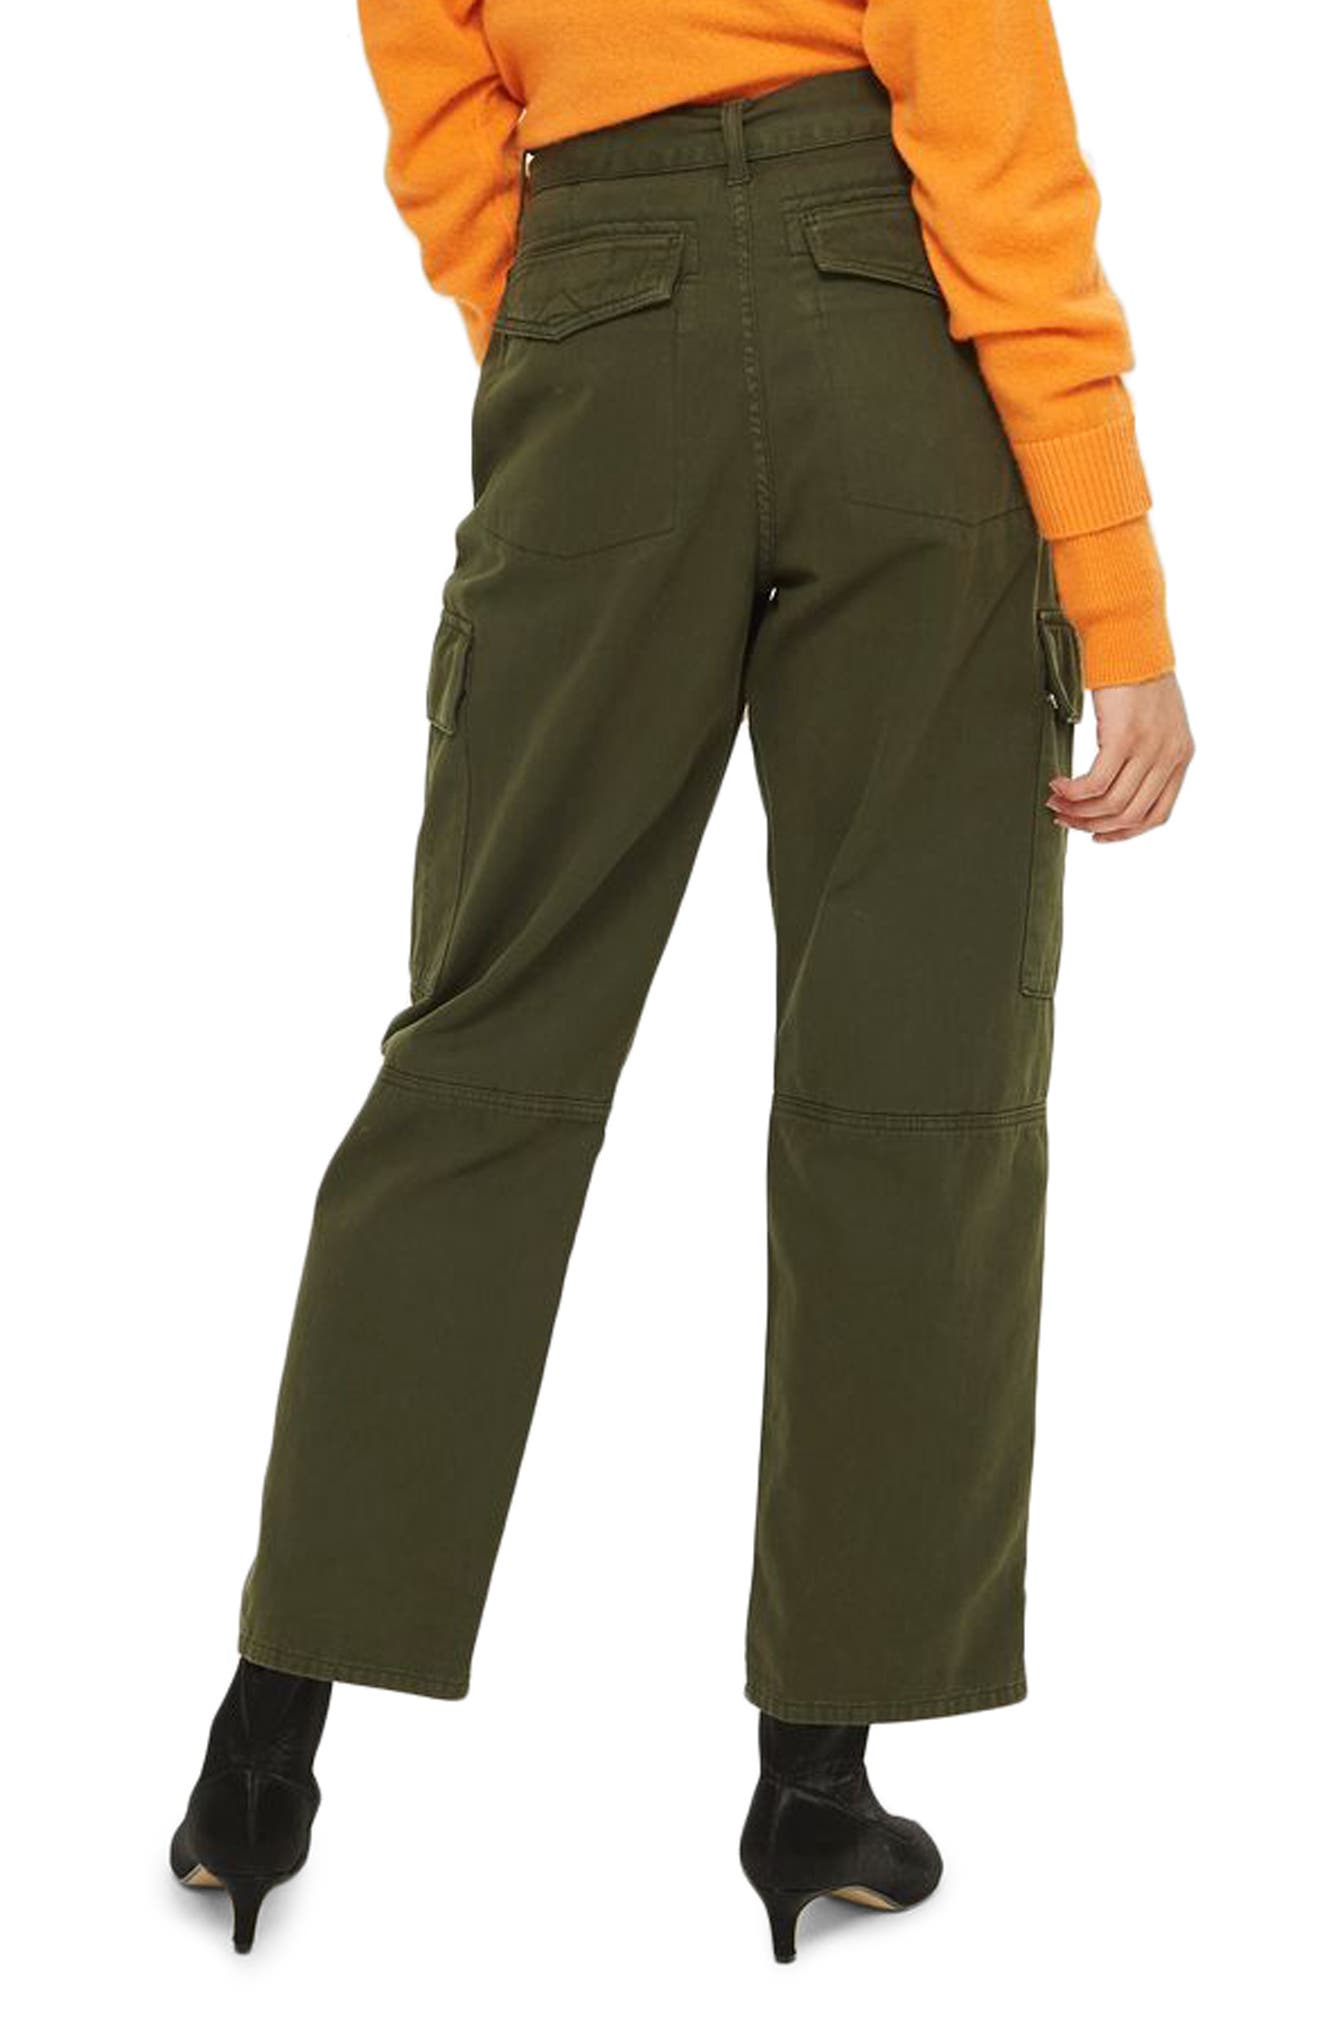 Combat Pocket Utility Trousers,                             Alternate thumbnail 3, color,                             Olive